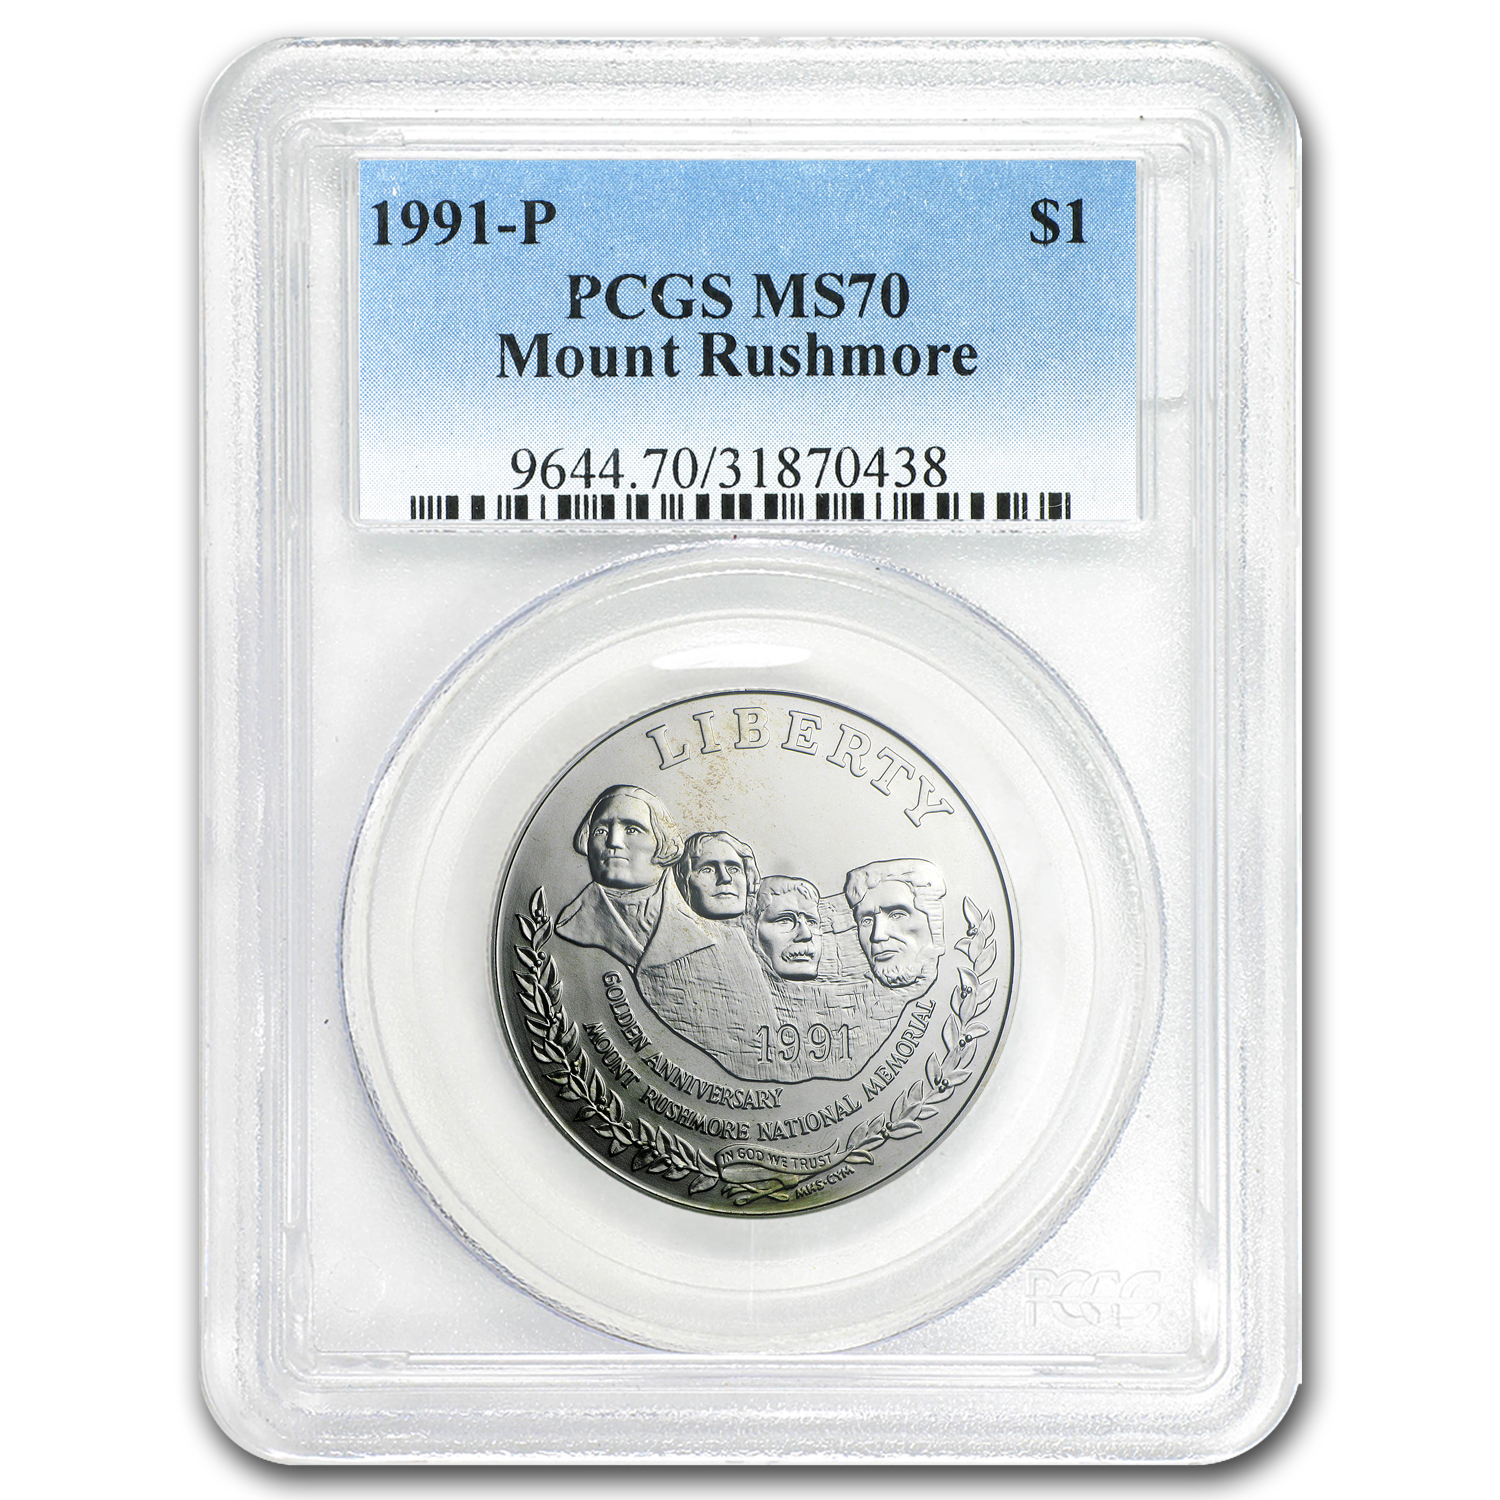 1991-P Mount Rushmore $1 Silver Commem MS-70 PCGS